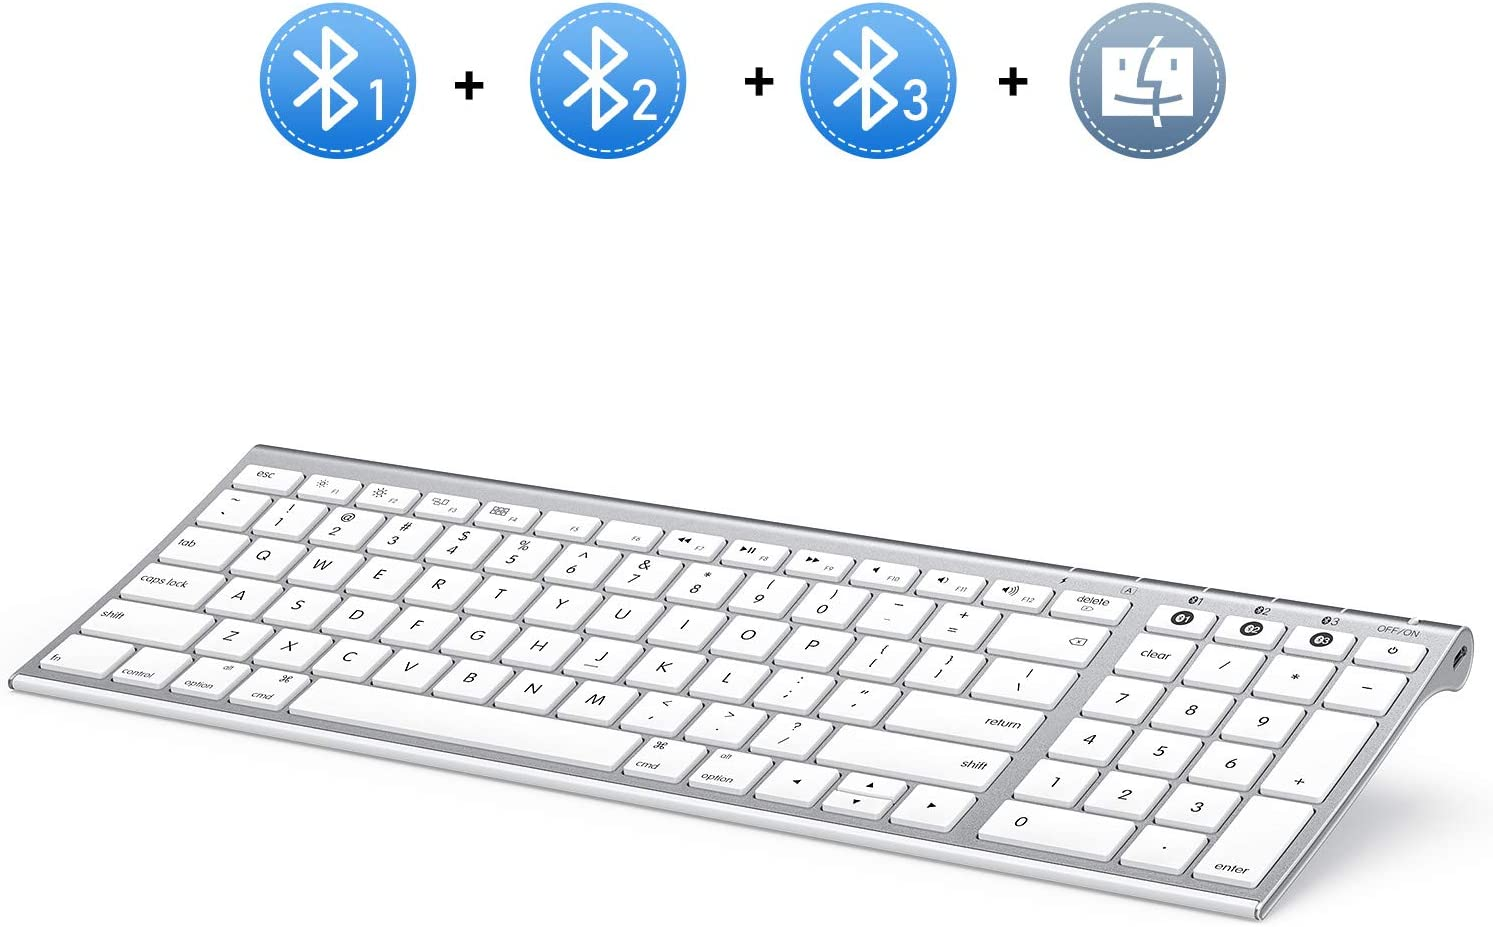 Multi-Device Bluetooth Keyboard for Mac OS, Jelly Comb Rechargeable Slim Wireless Keyboard with Number Pad Compatible for MacBook Pro/Air, iMac, iPhone, iPad Pro/Air/Mini - White and Silver